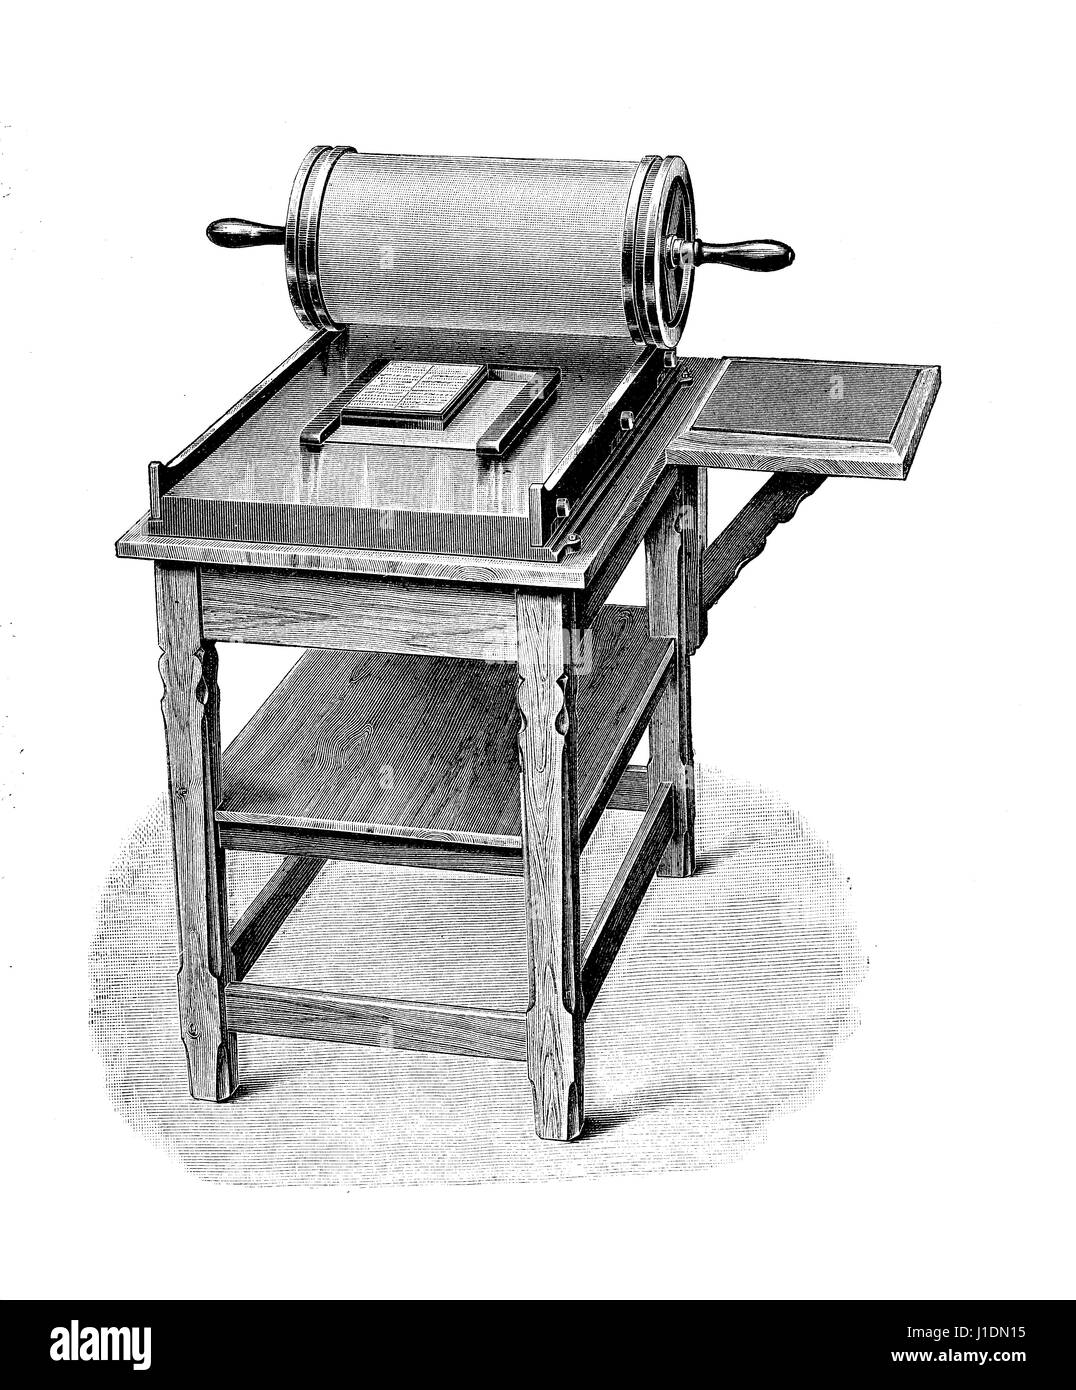 early manual stencil duplicator or mimeograph, vintage engraving - Stock Image